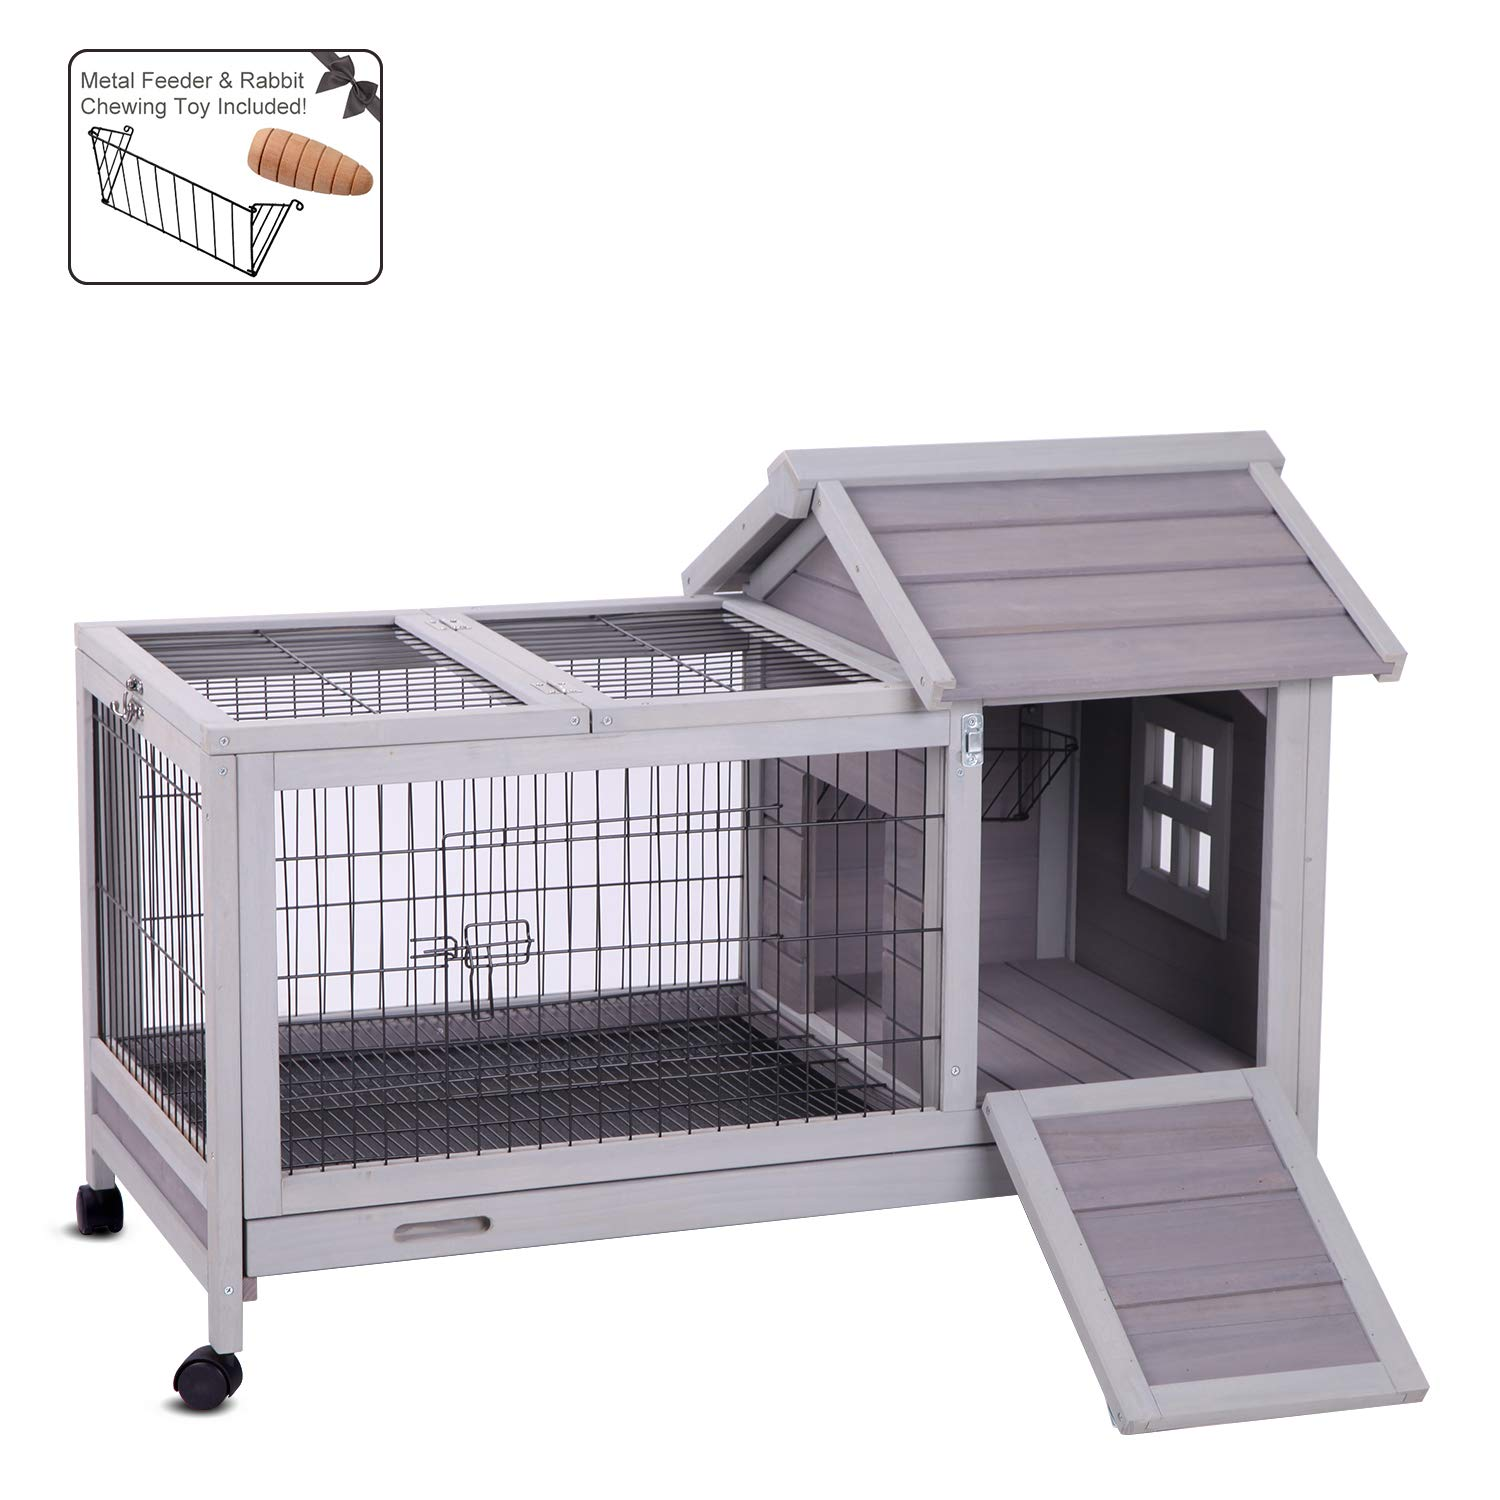 Aivituvin Rabbit Hutch Outdoor and Indoor on Wheels, Wooden Bunny Cages with Deeper Leakproof Tray - Upgrade with Metal Wire Floor,40.4'' Lx23.6 Wx28.3 H by Aivituvin